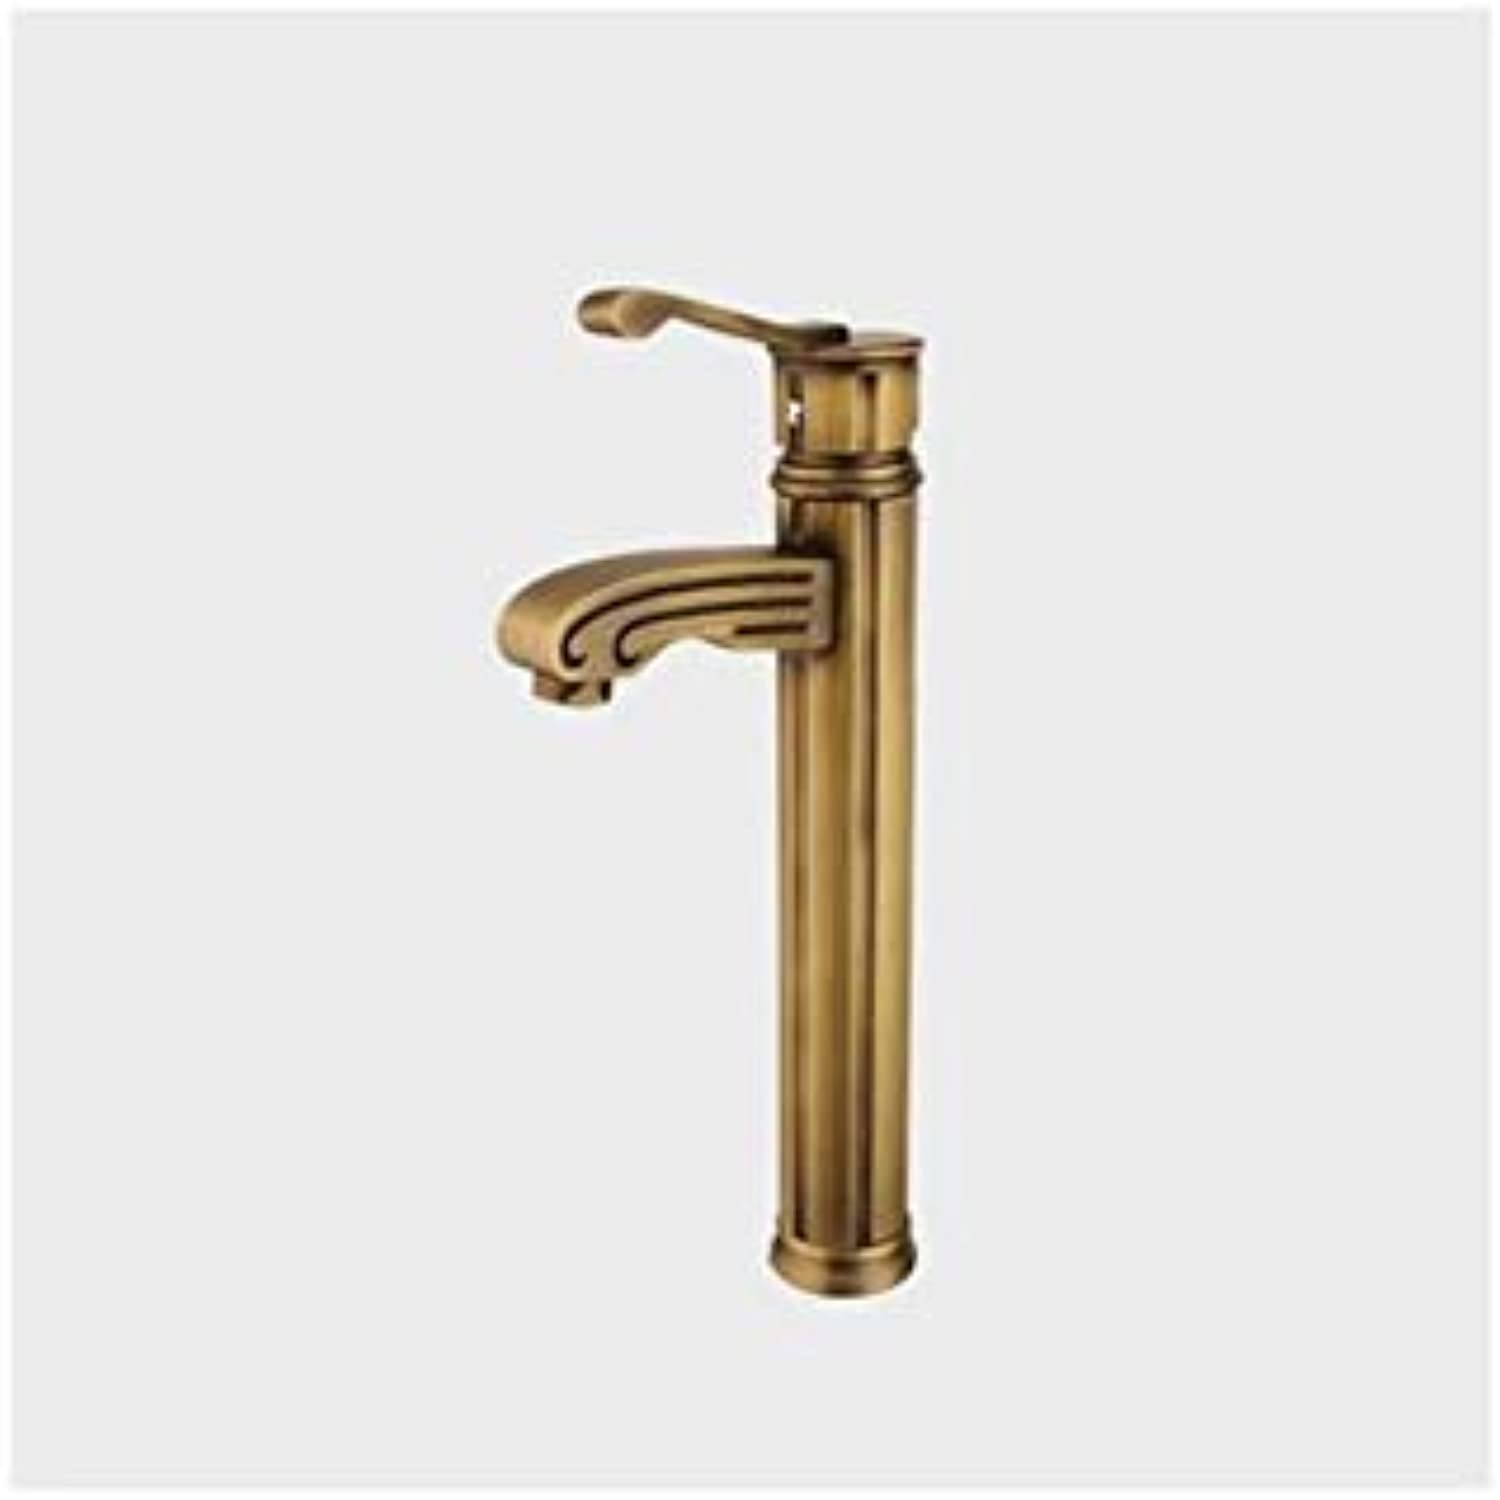 Taps Kitchen Sinkfaucet Creativity Pure Copper Hot and Cold Above Counter Basin Art Basin Vintage Faucet Tap Upscale golden